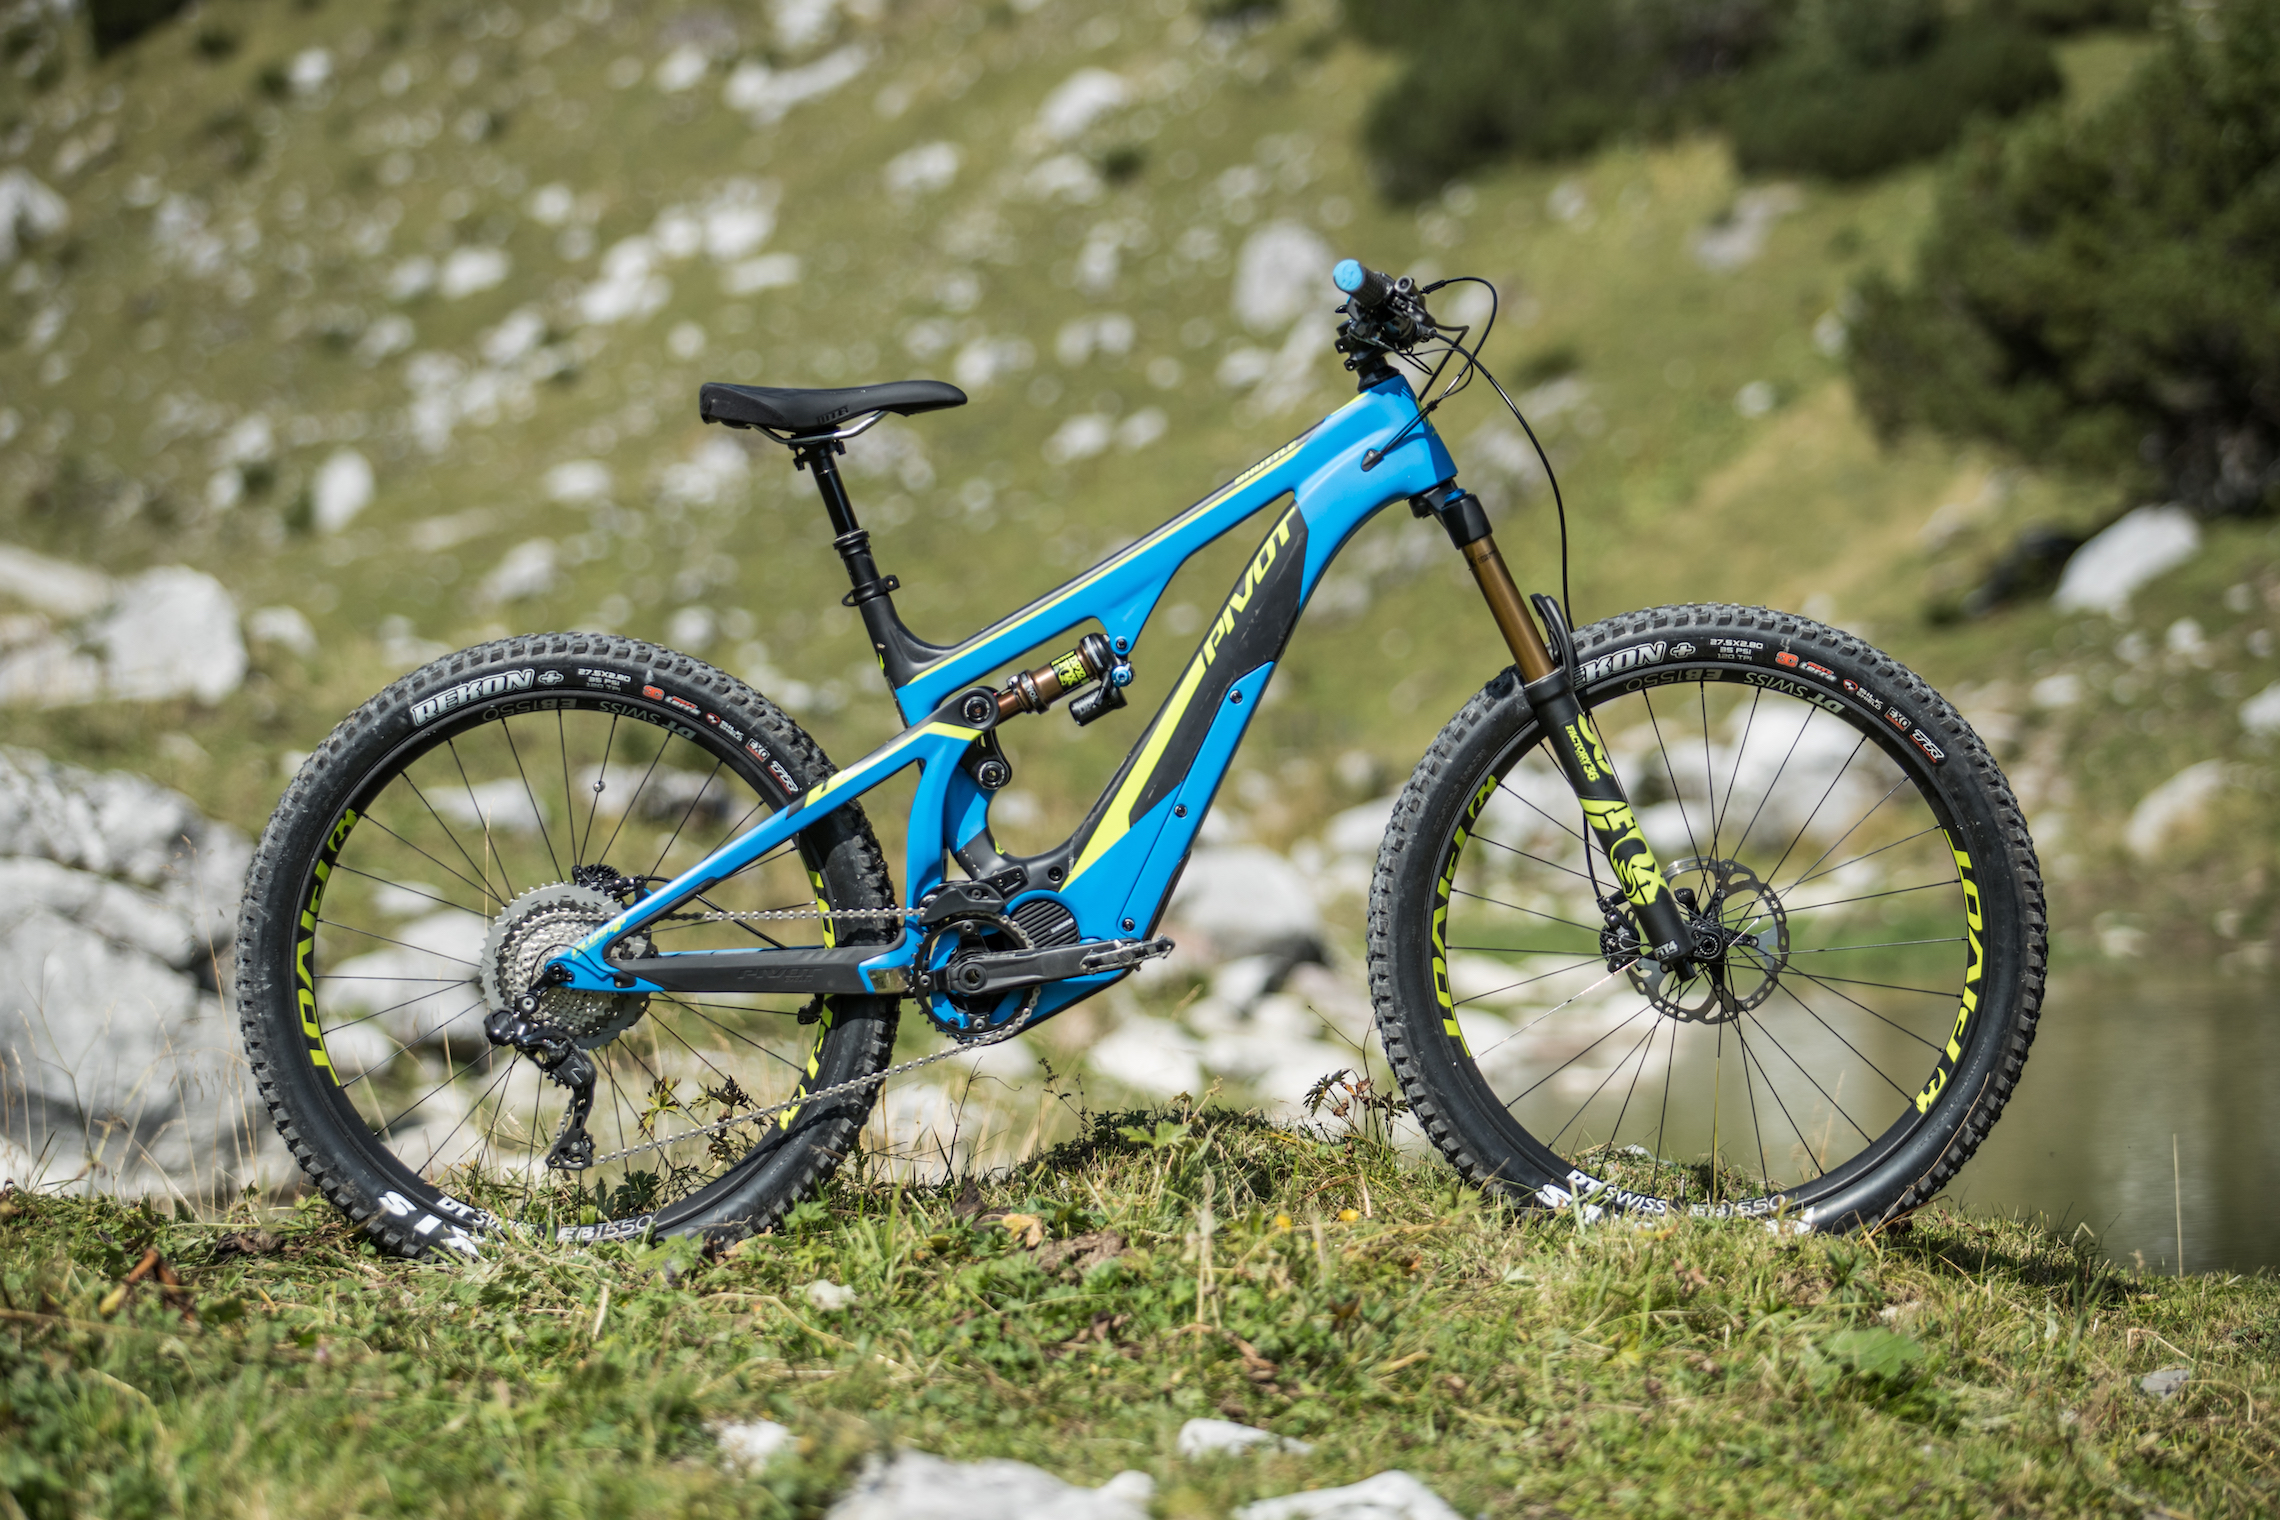 Tested: Pivot Shuttle – Perfect Partner For Hunting The Fastest Times?